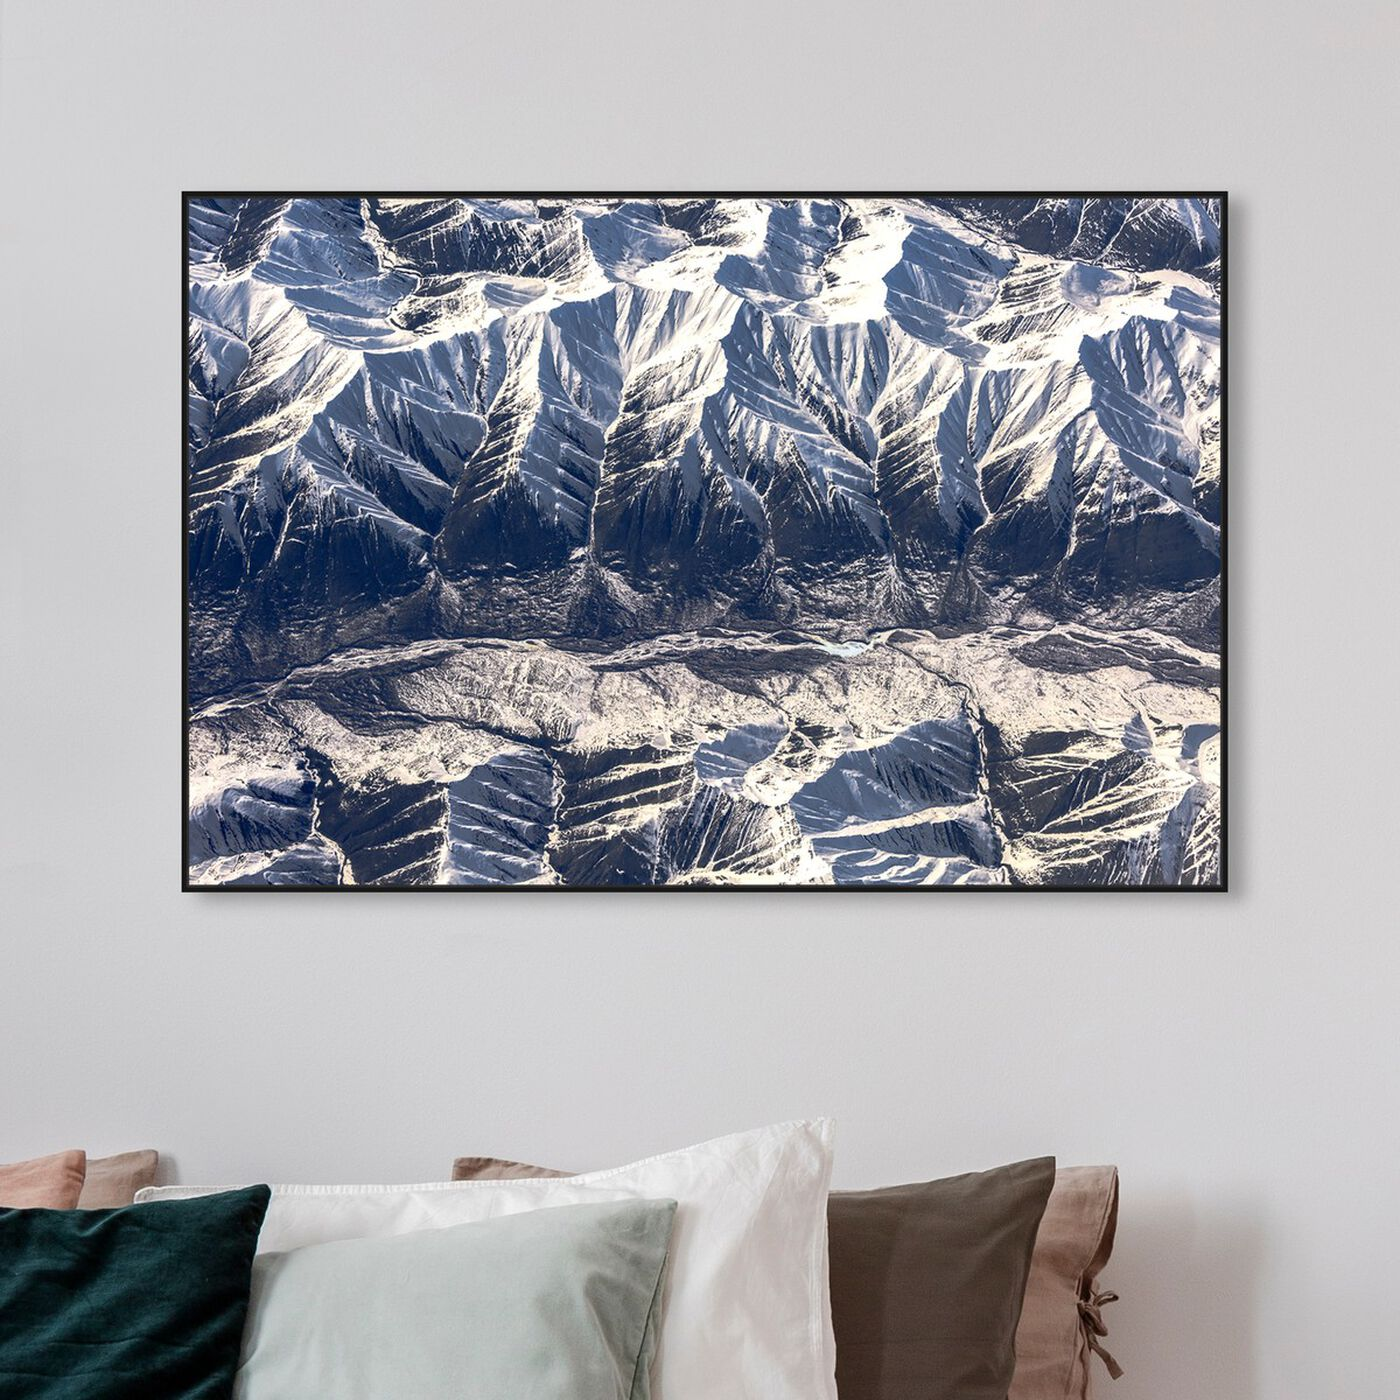 Hanging view of Curro Cardenal - Aero View II featuring nature and landscape and mountains art.